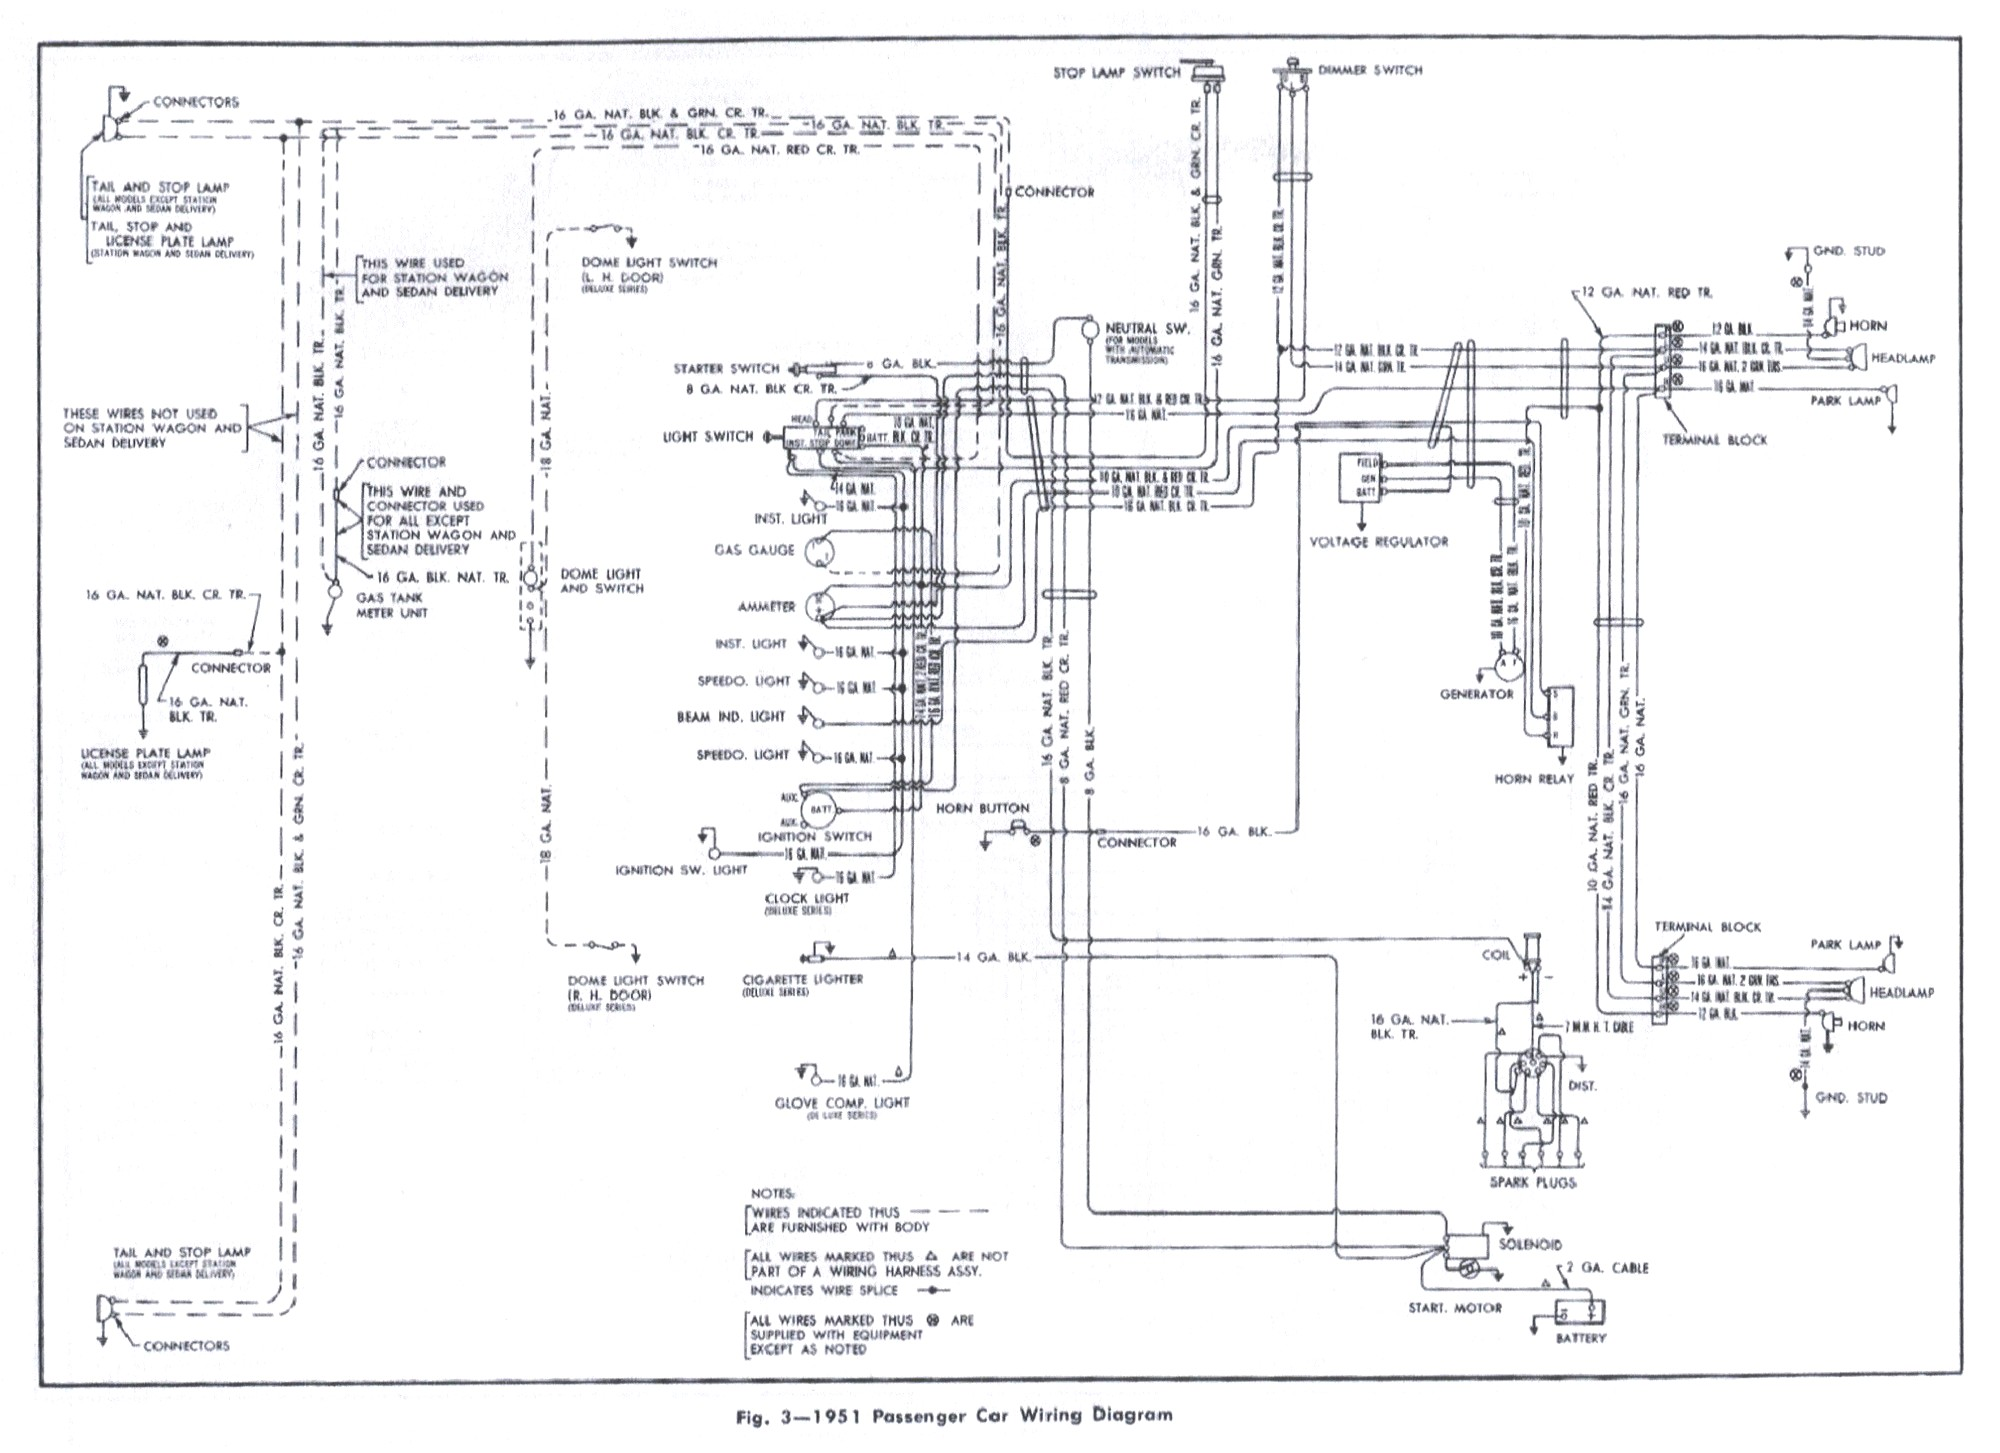 2 2l S10 Engine Diagram on 1970 corvette ignition system